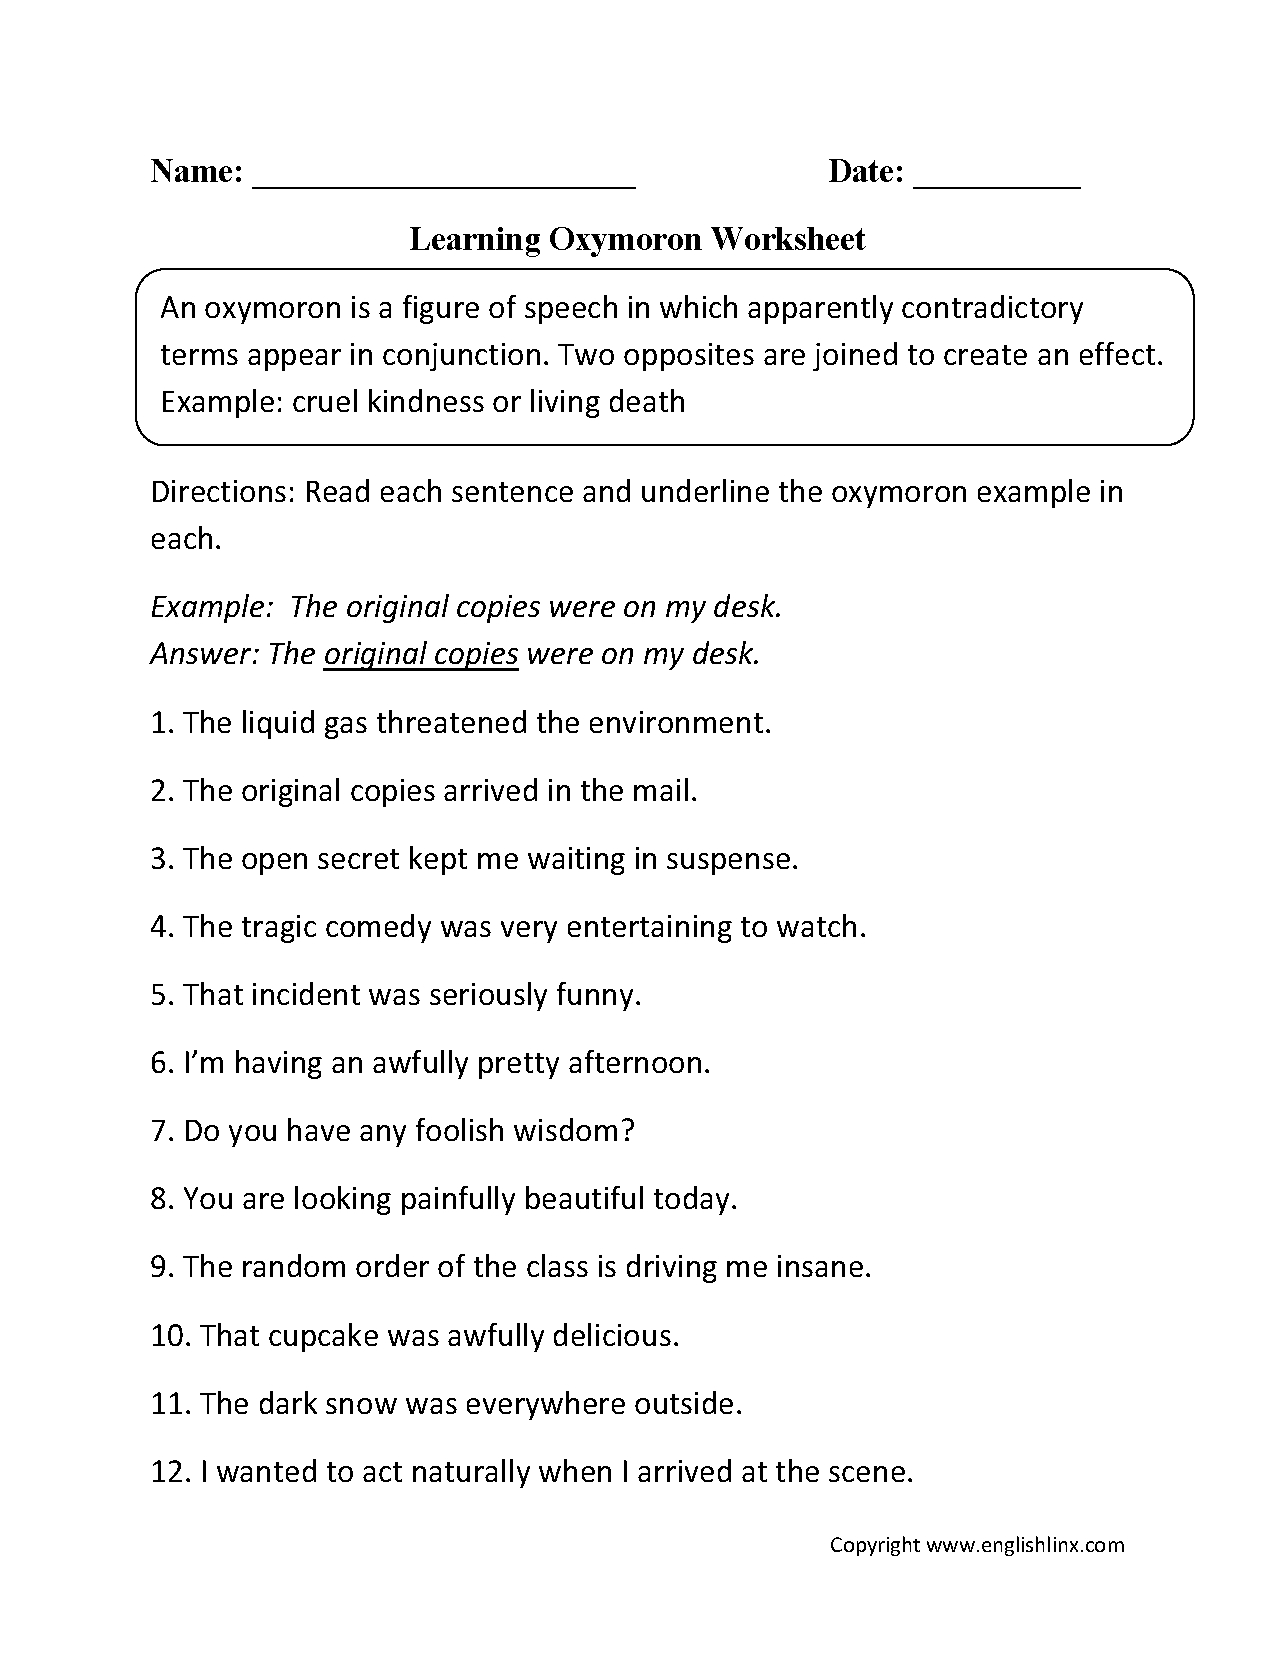 Figurative Language  Grade 8    Free Printable Tests and Worksheets in addition  likewise paring Metaphors Worksheet   6th Grade ELA   Pinterest likewise  as well Figurative Language in Poetry  Grade 6    Free Printable Tests and as well free figurative language worksheets – pallyapp co additionally Figurative Language Worksheet 6   Answers also Figurative Language Poem 6 Answers Pleasant Best Images About On Of besides Middle School Reading Pages Free  prehension With Questions further Content by Subject Worksheets   Figurative Language Worksheets as well Figurative Language Worksheets For Grade 6 Identifying 1 Worksheet likewise figurative language worksheets grade 6 – domrabotniku info additionally All Worksheets Figurative Language Grade 6 Best Ideas About On For likewise Figurative Language Worksheets   Education besides  further Figurative Language Worksheets   Education. on figurative language worksheets grade 6